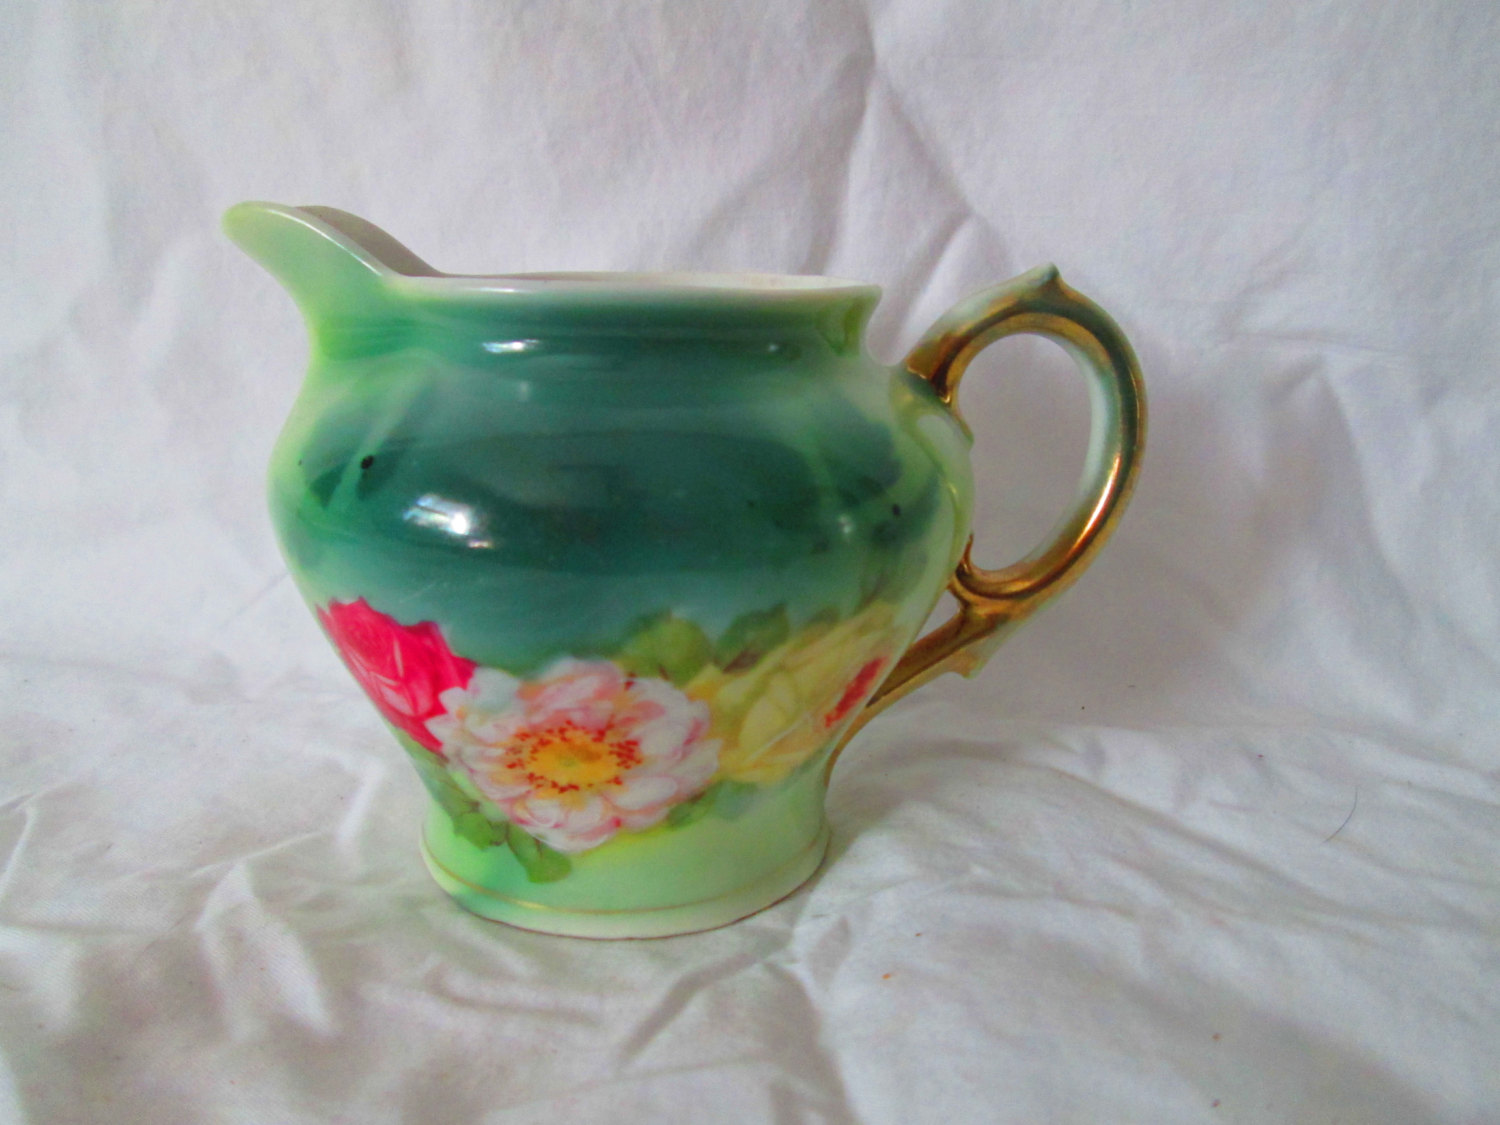 Antique Rare signed Royal Beyreuth Cream Pitcher Early piece Beautiful Condition with Roses Red Pink and Yellow